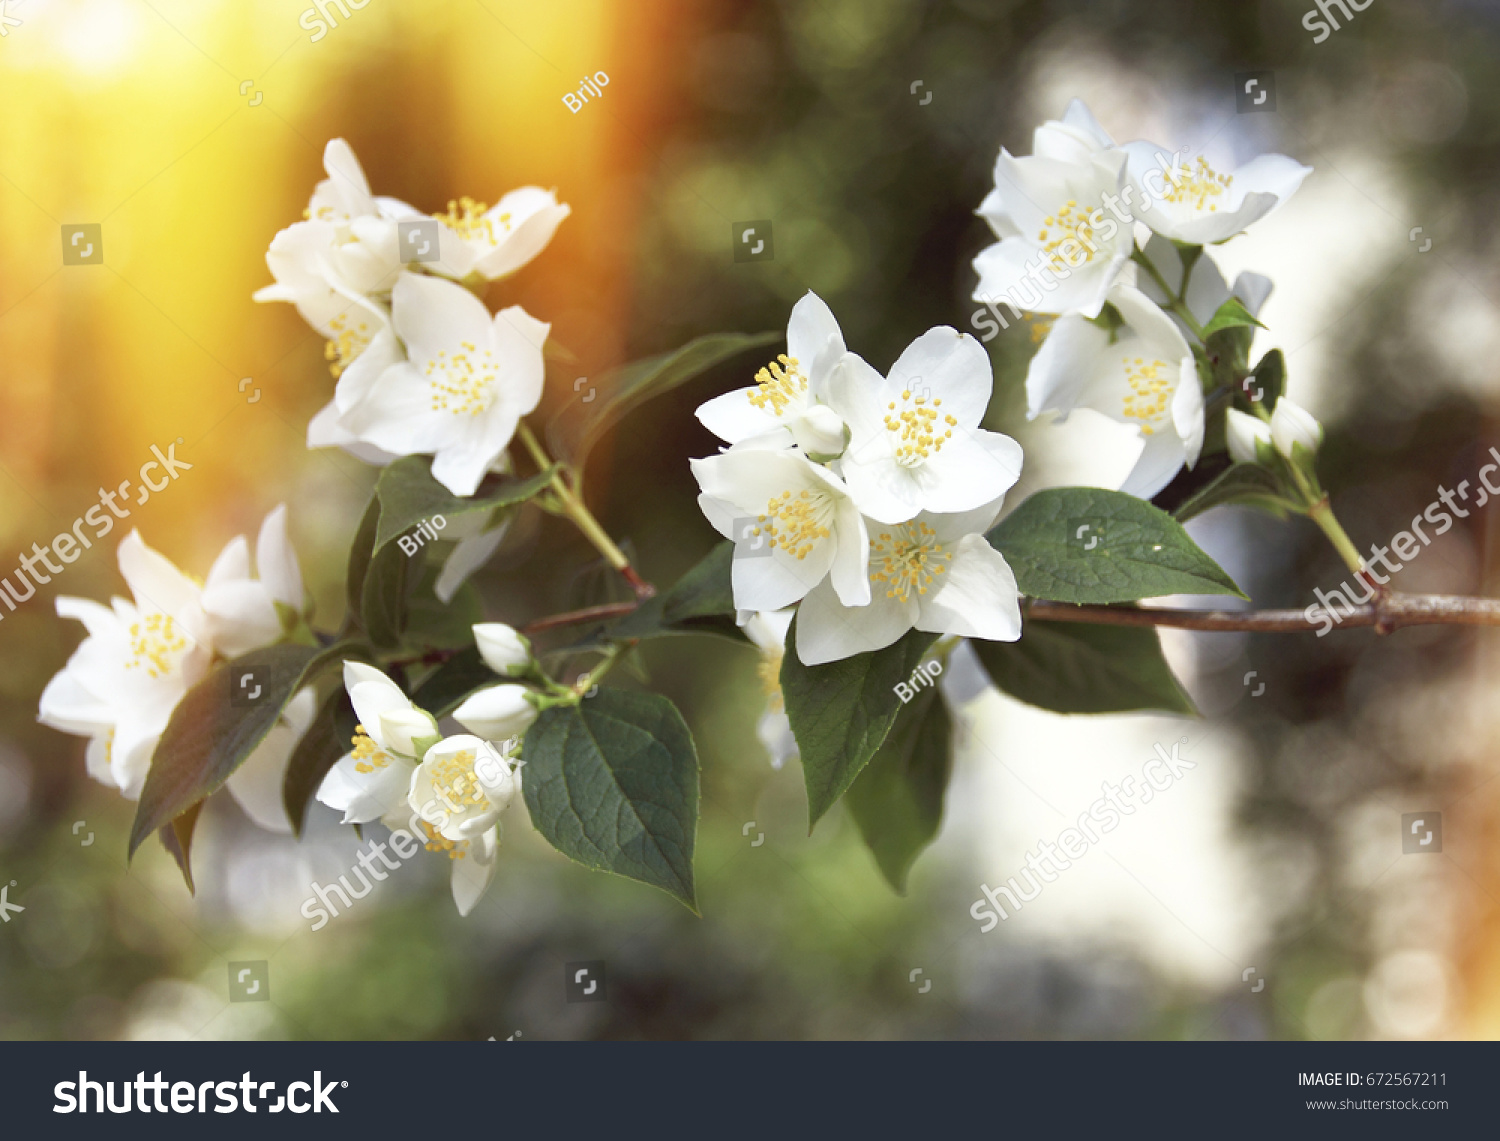 Branch On An Apple Blossom Tree Full Of White Flowers With Yellow